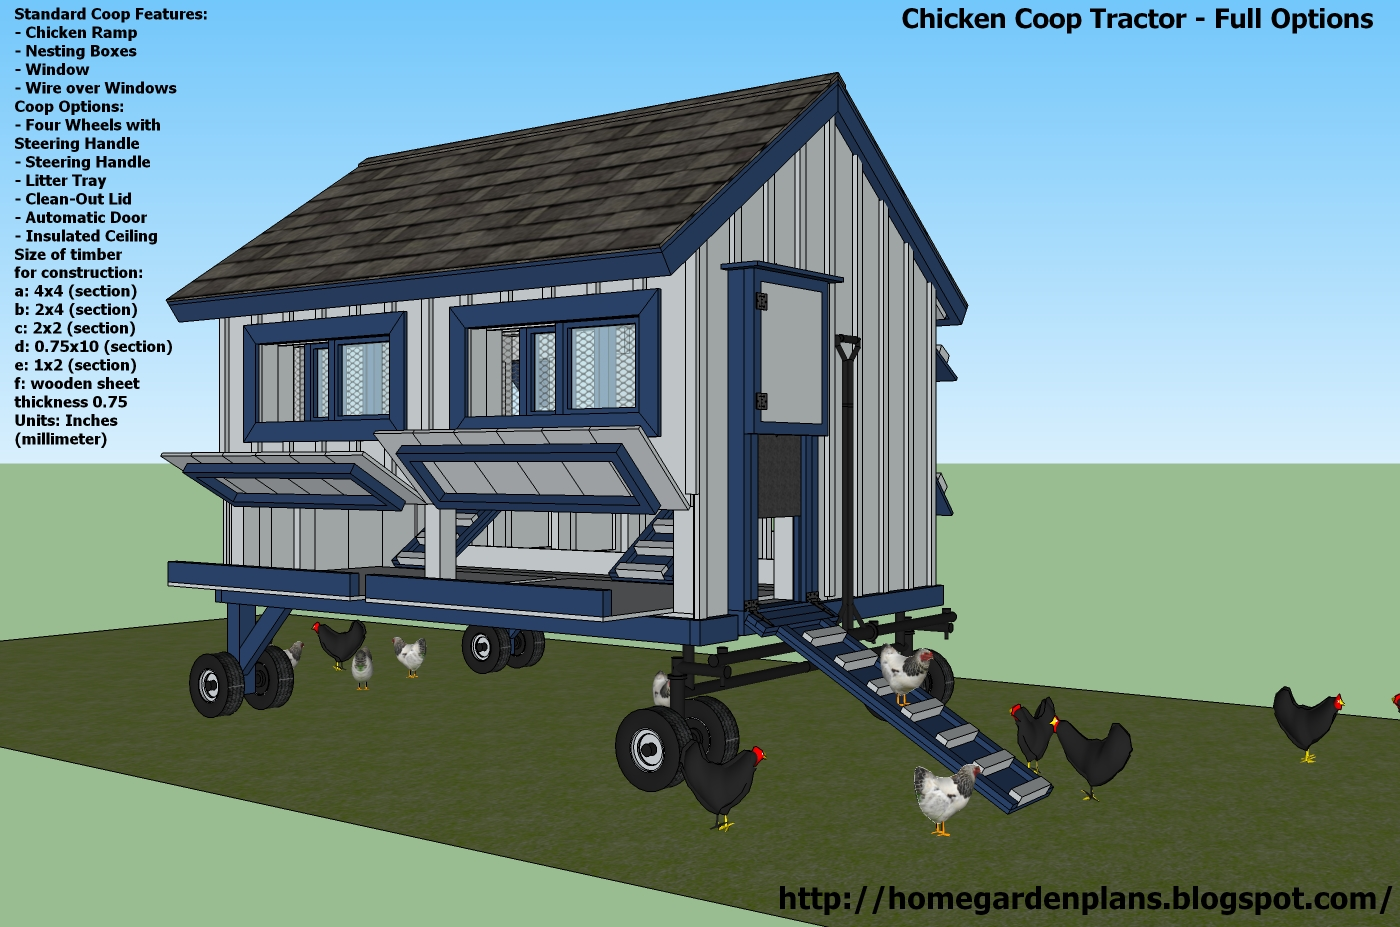 Home garden plans chicken coops Blueprint designer free